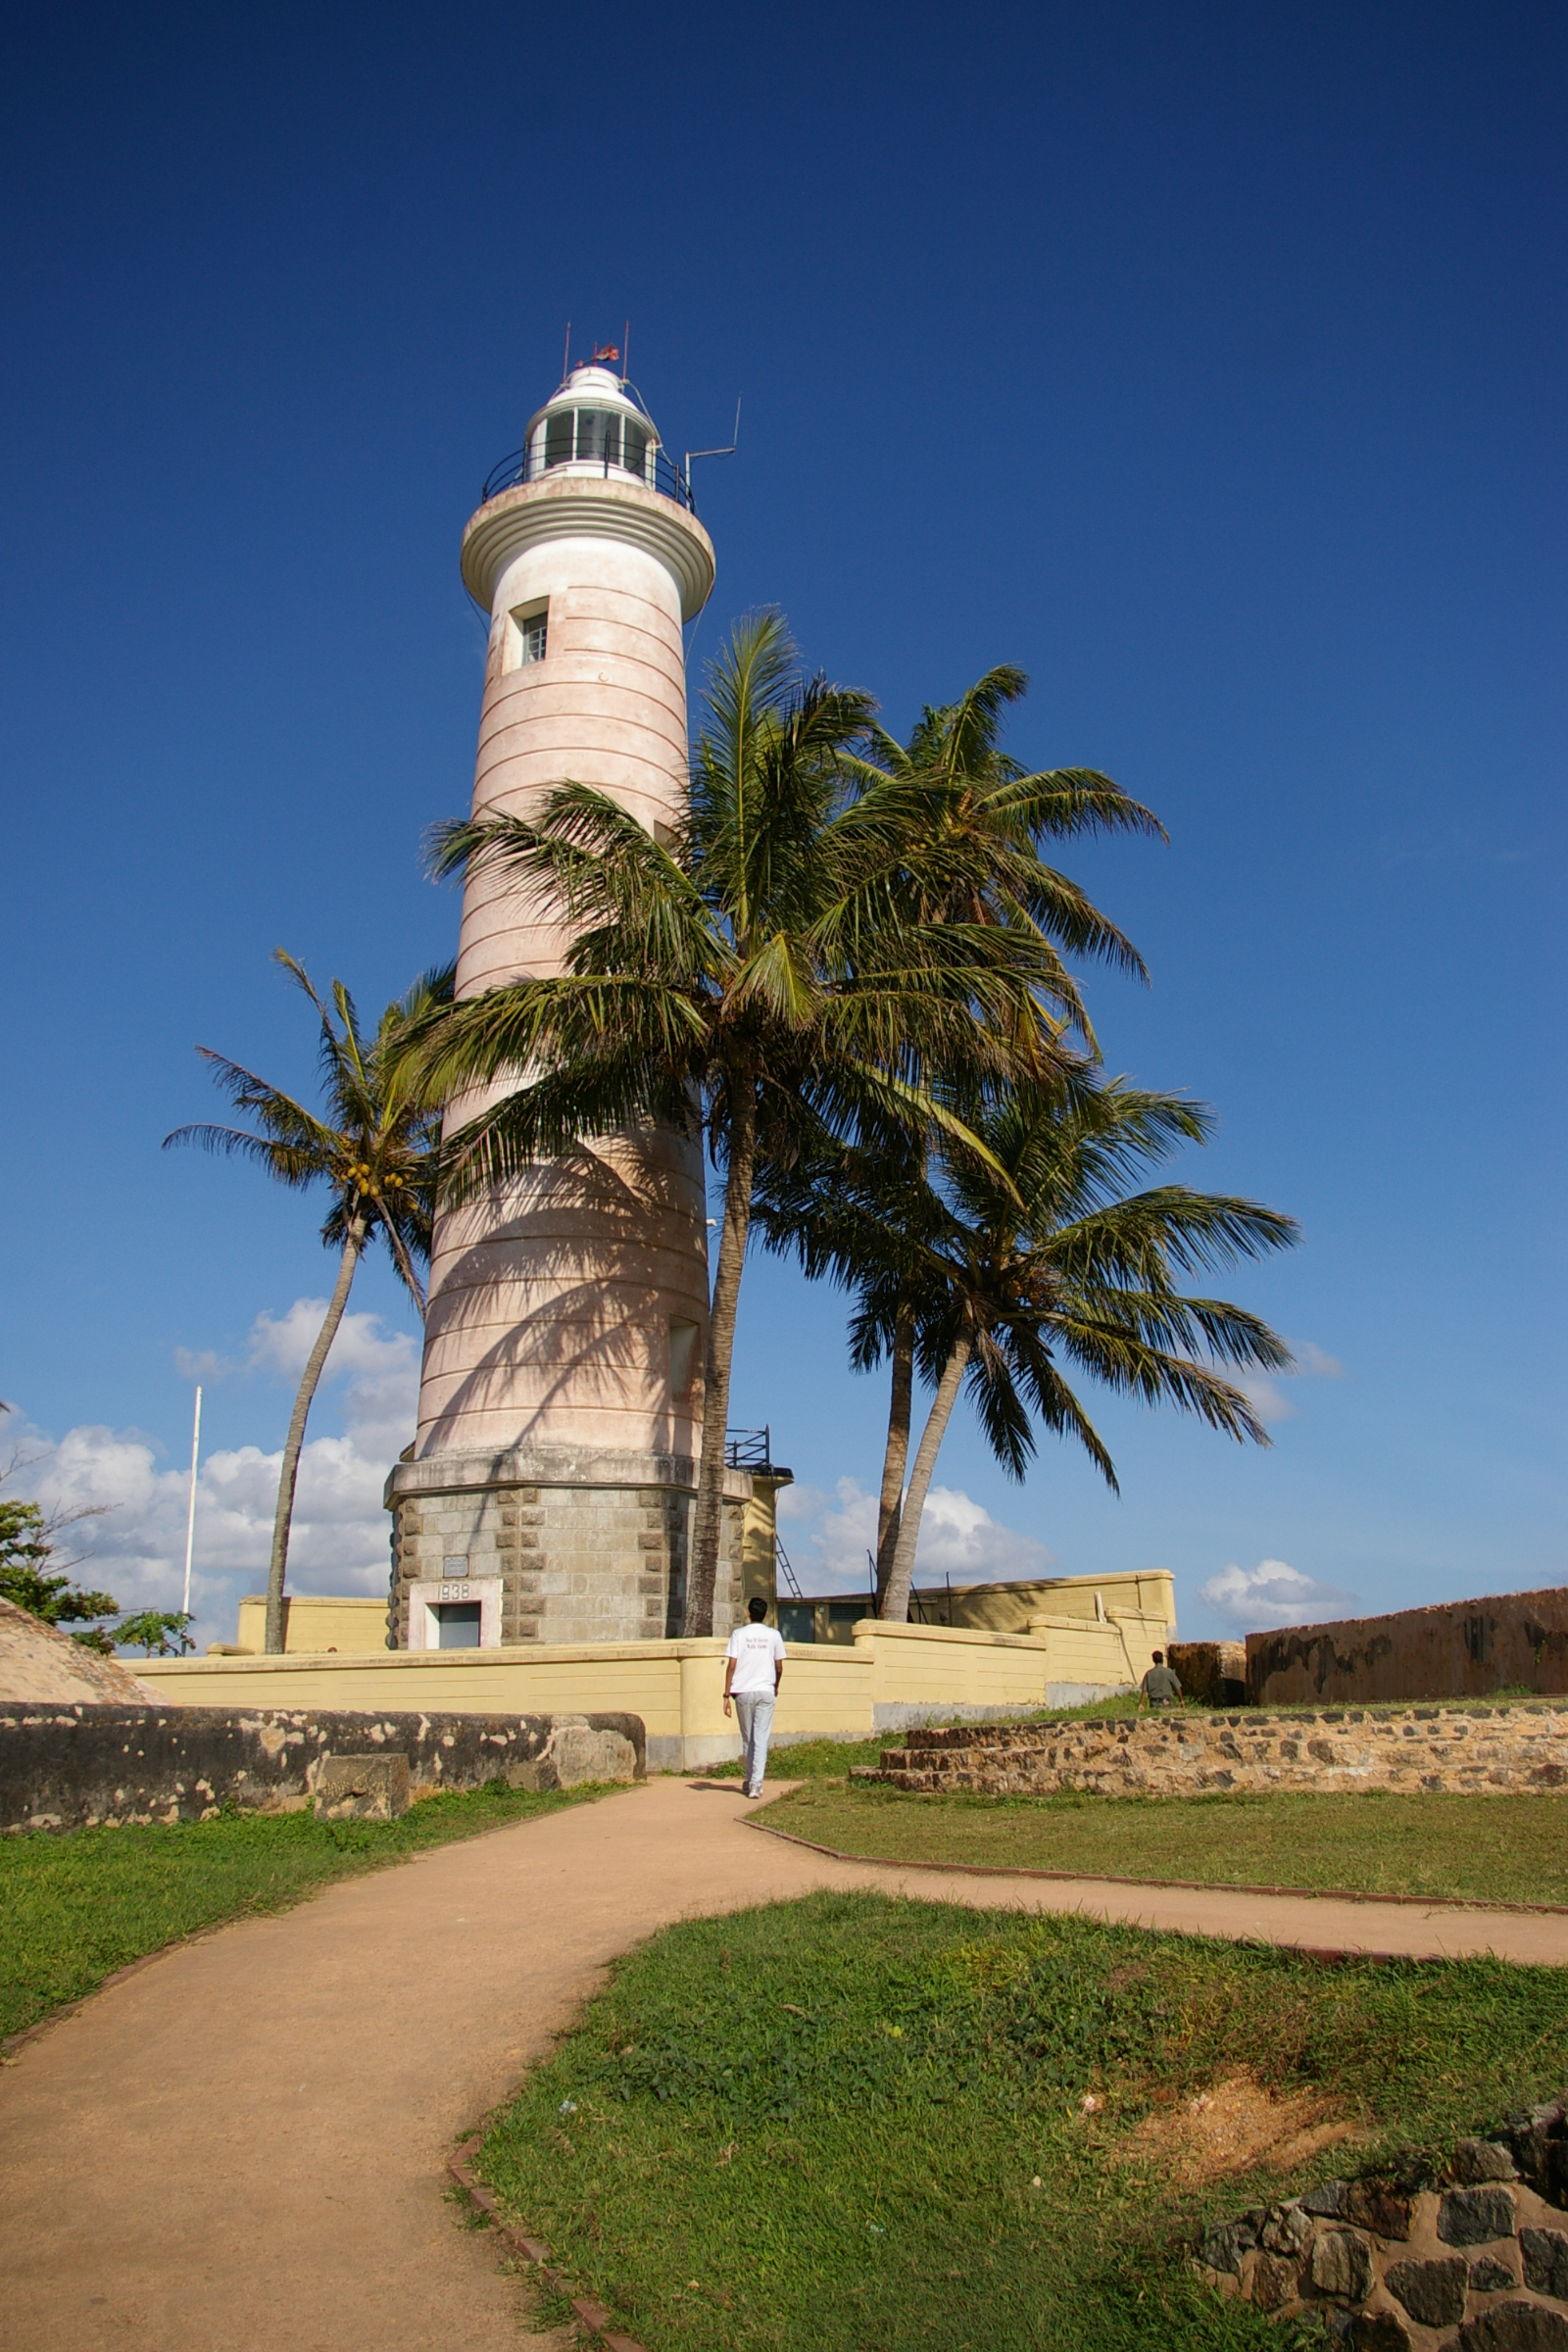 Light house at the 17th century dutch fort at Galle in south west SriLanka. As the point where ships rounded the Sri Lankan landmass, Galle was a strategic point to hold, to control the shipping lanes. The place is picturesque.